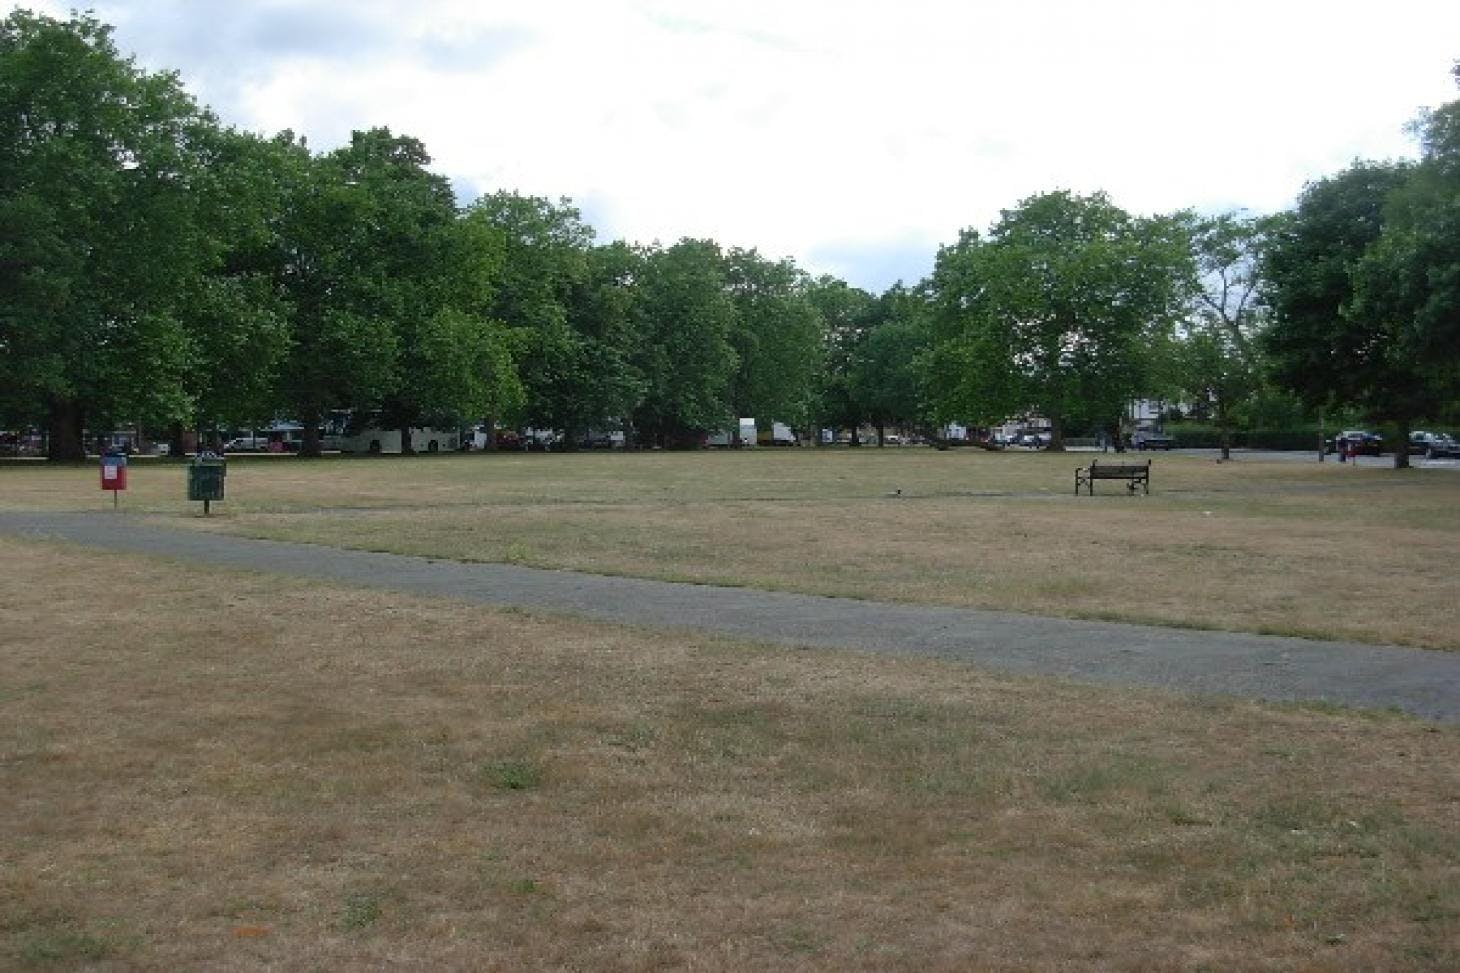 Plumstead Common Outdoor | Grass athletics track